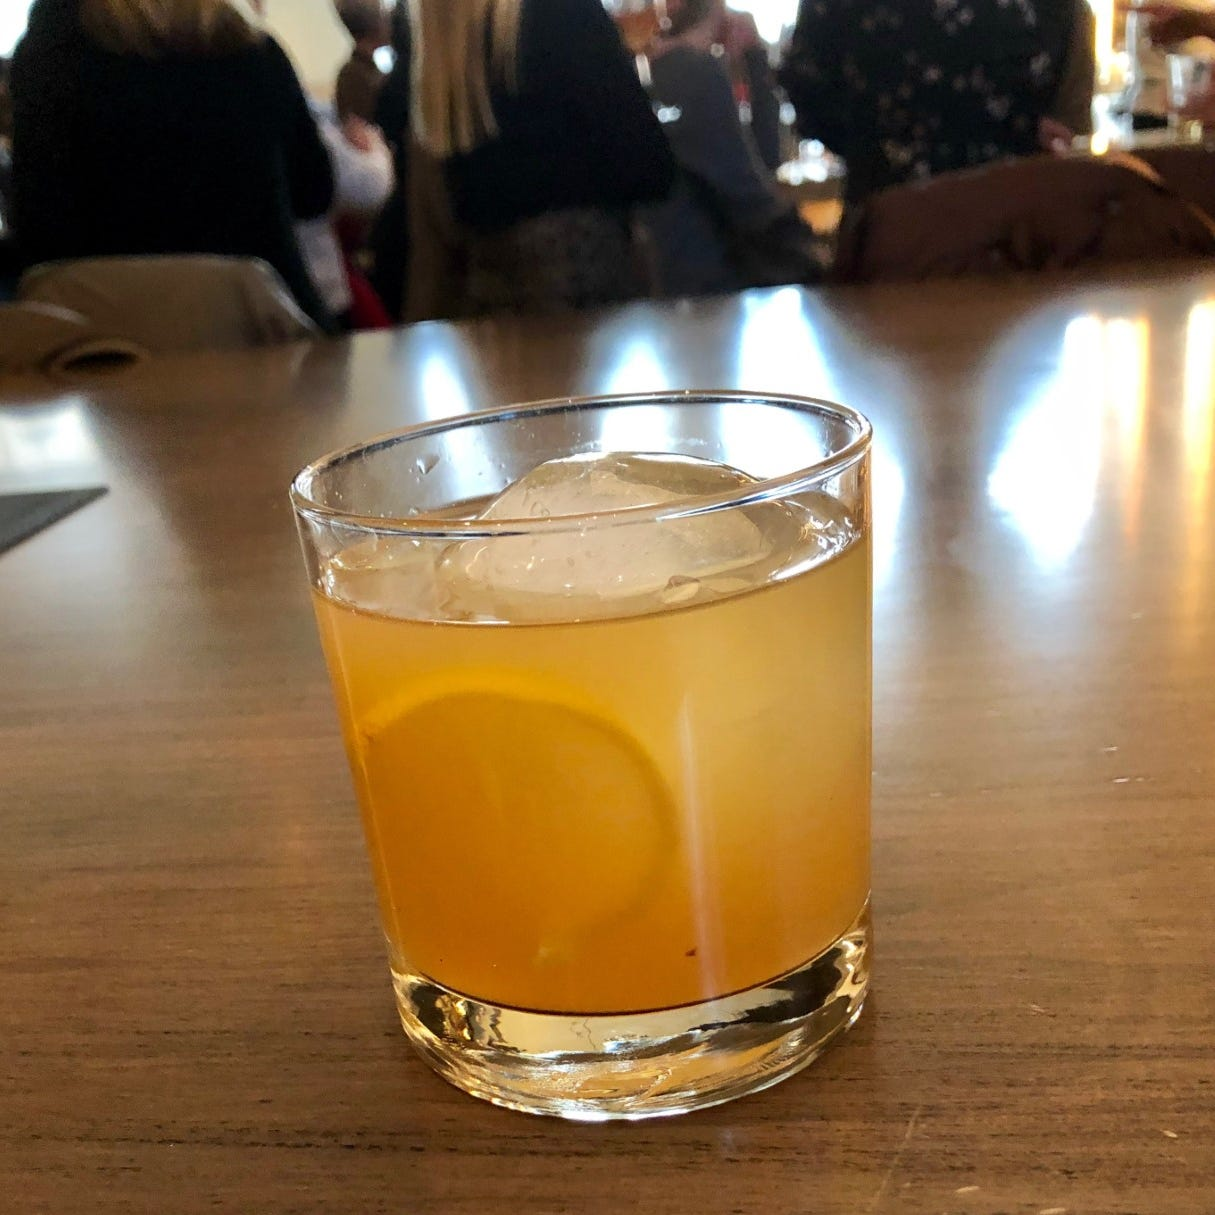 Tennessee Gold cocktail comes with lemon peel garnish and a history lesson about Uncle Nearest